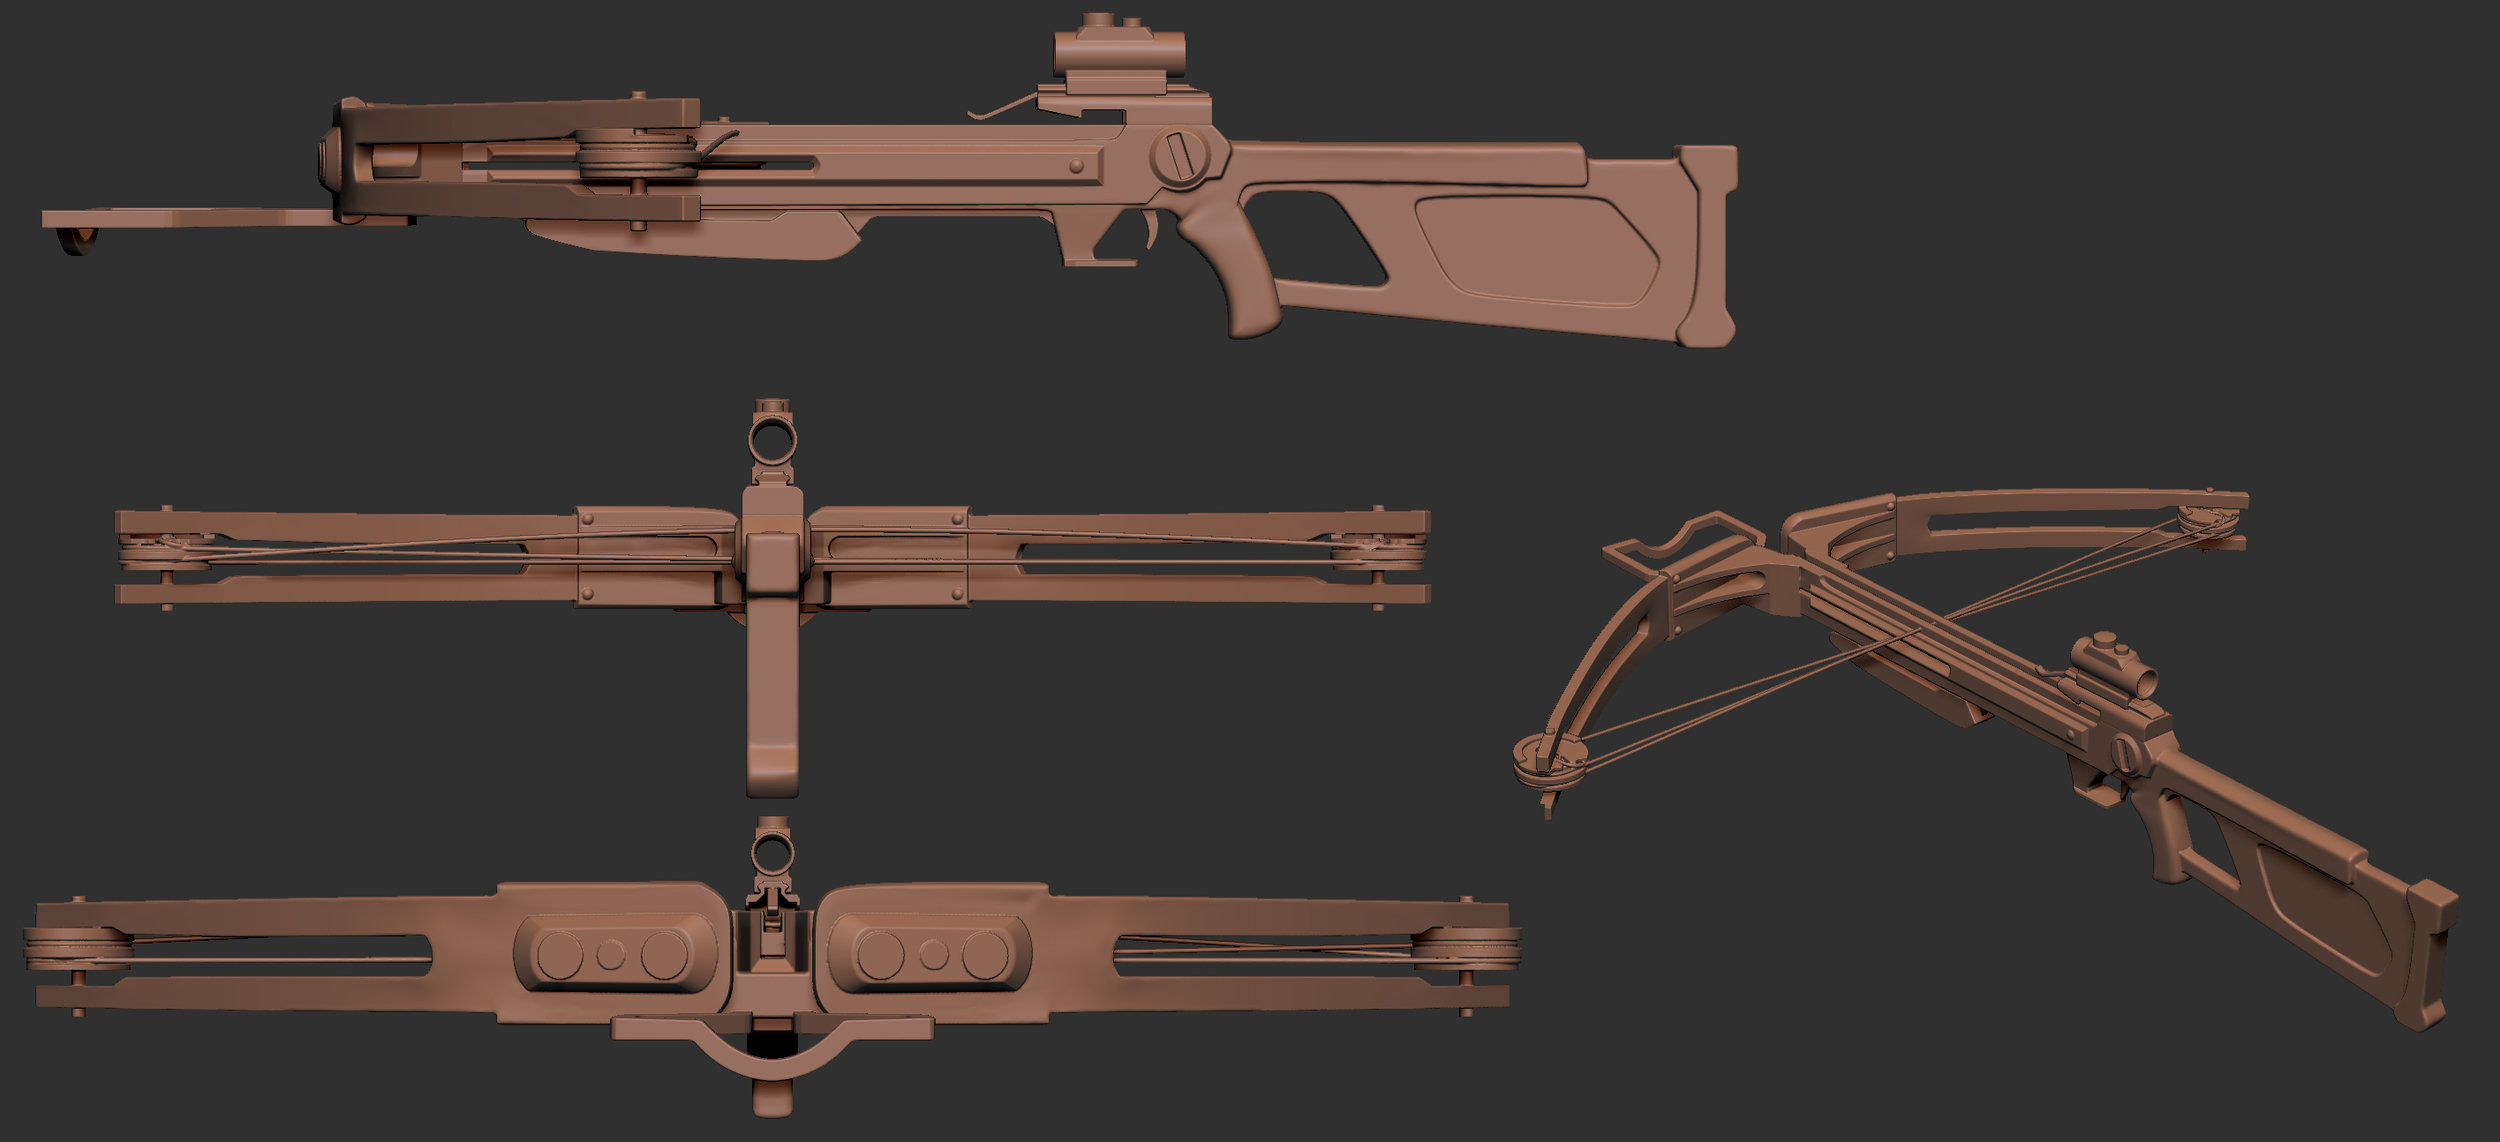 Crossbow_Base_Zbrush_comped.jpg